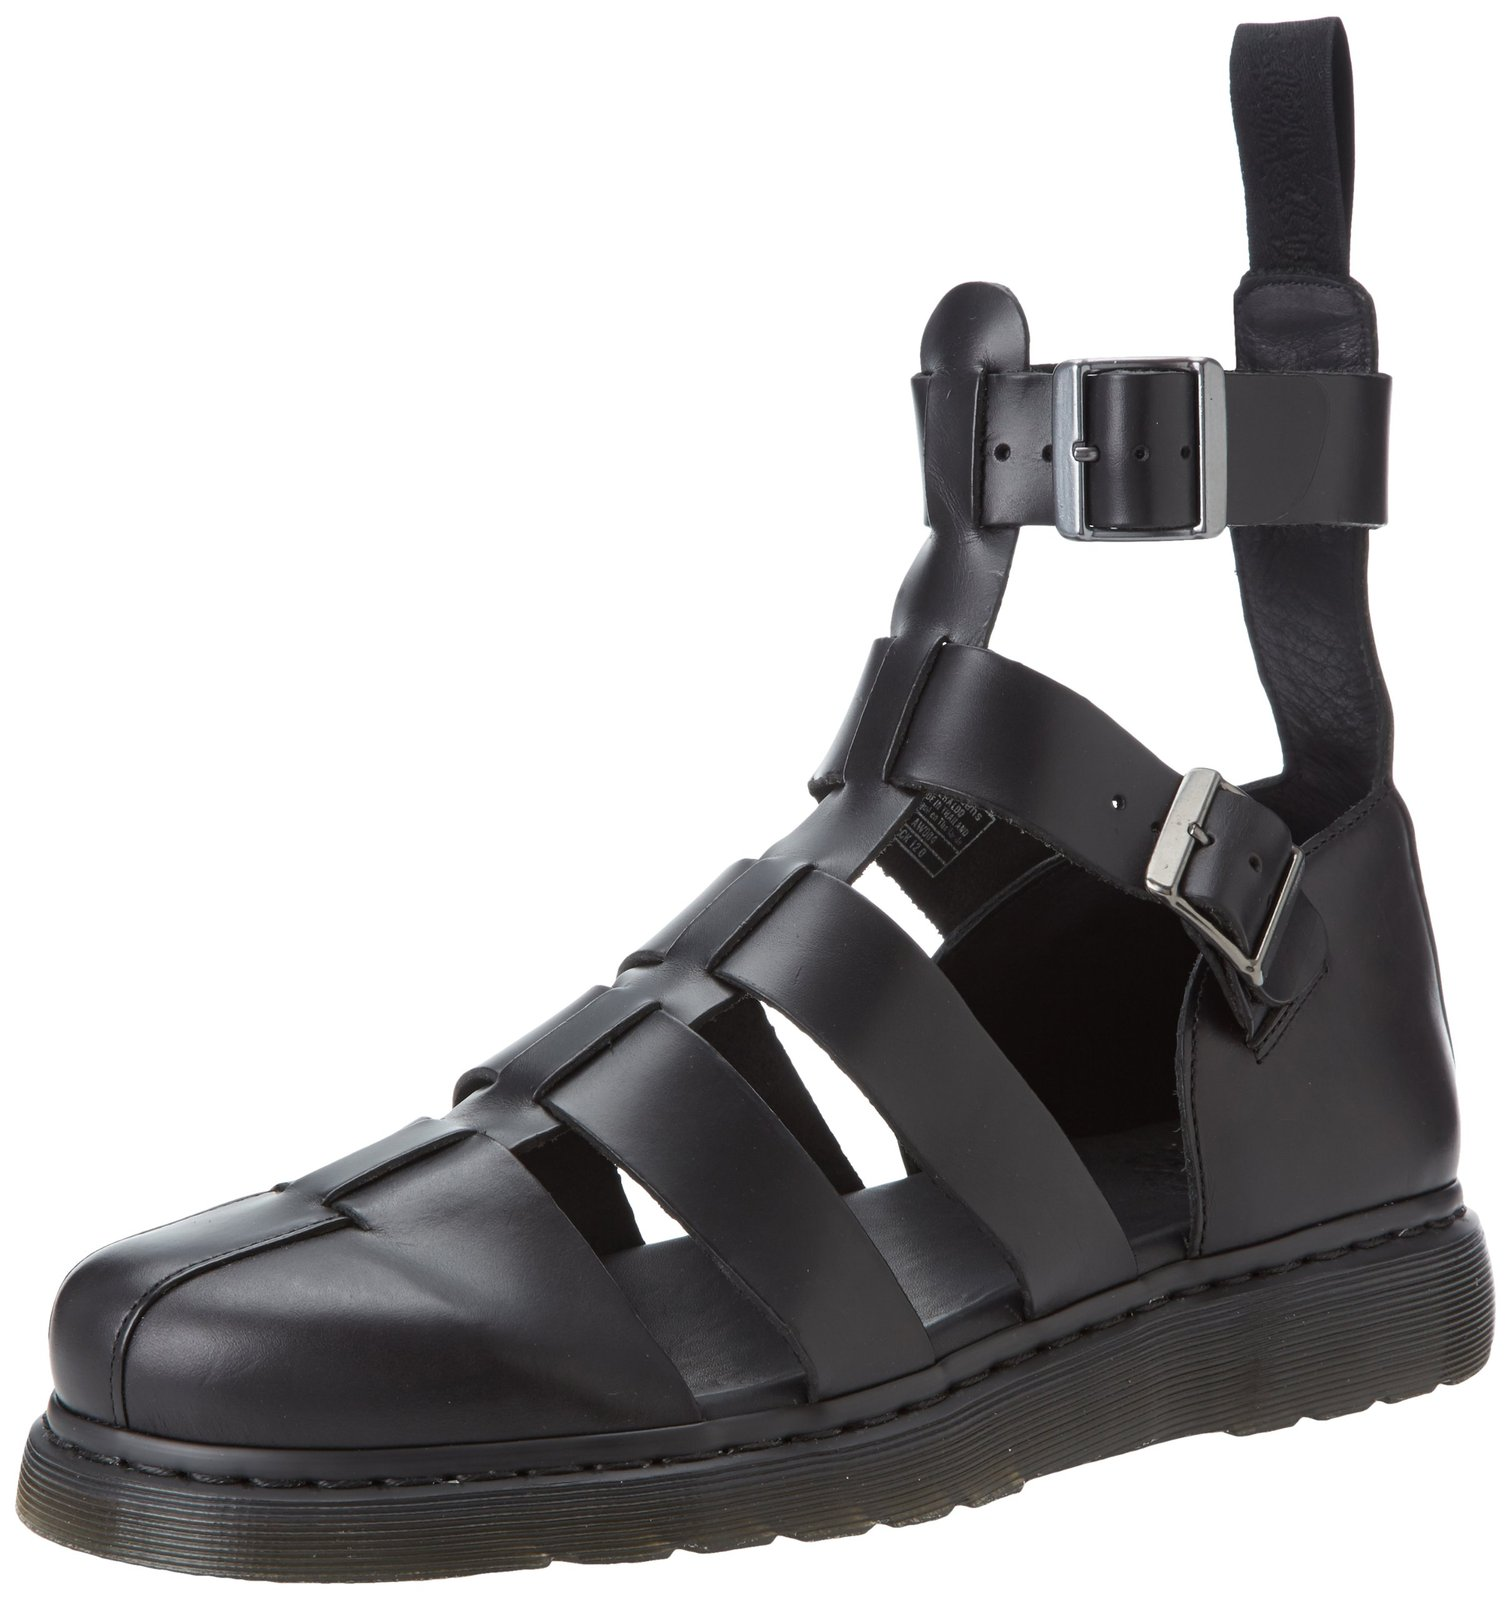 Dr. Martens Men's Geraldo Fisherman Sandal, black, 7 UK/8 M US